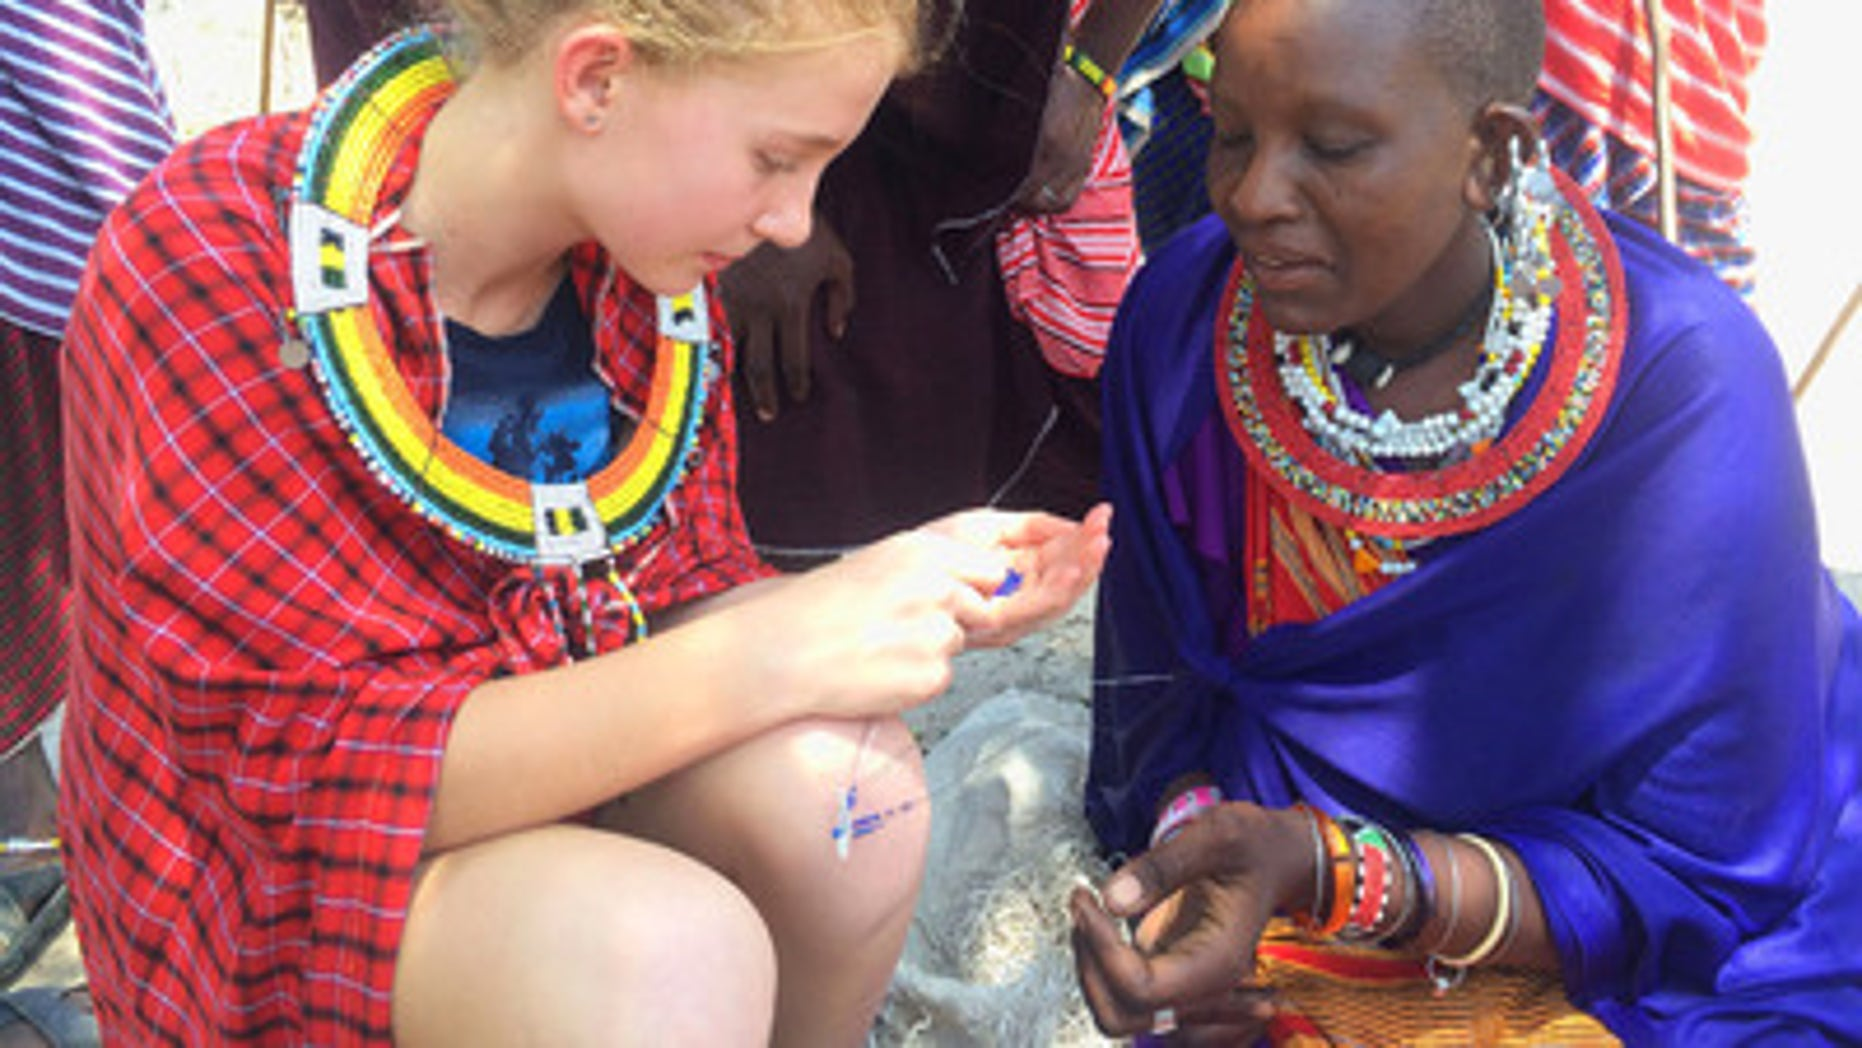 Dolan family spending time with the locals, learning how to make bracelets in Tanzania.